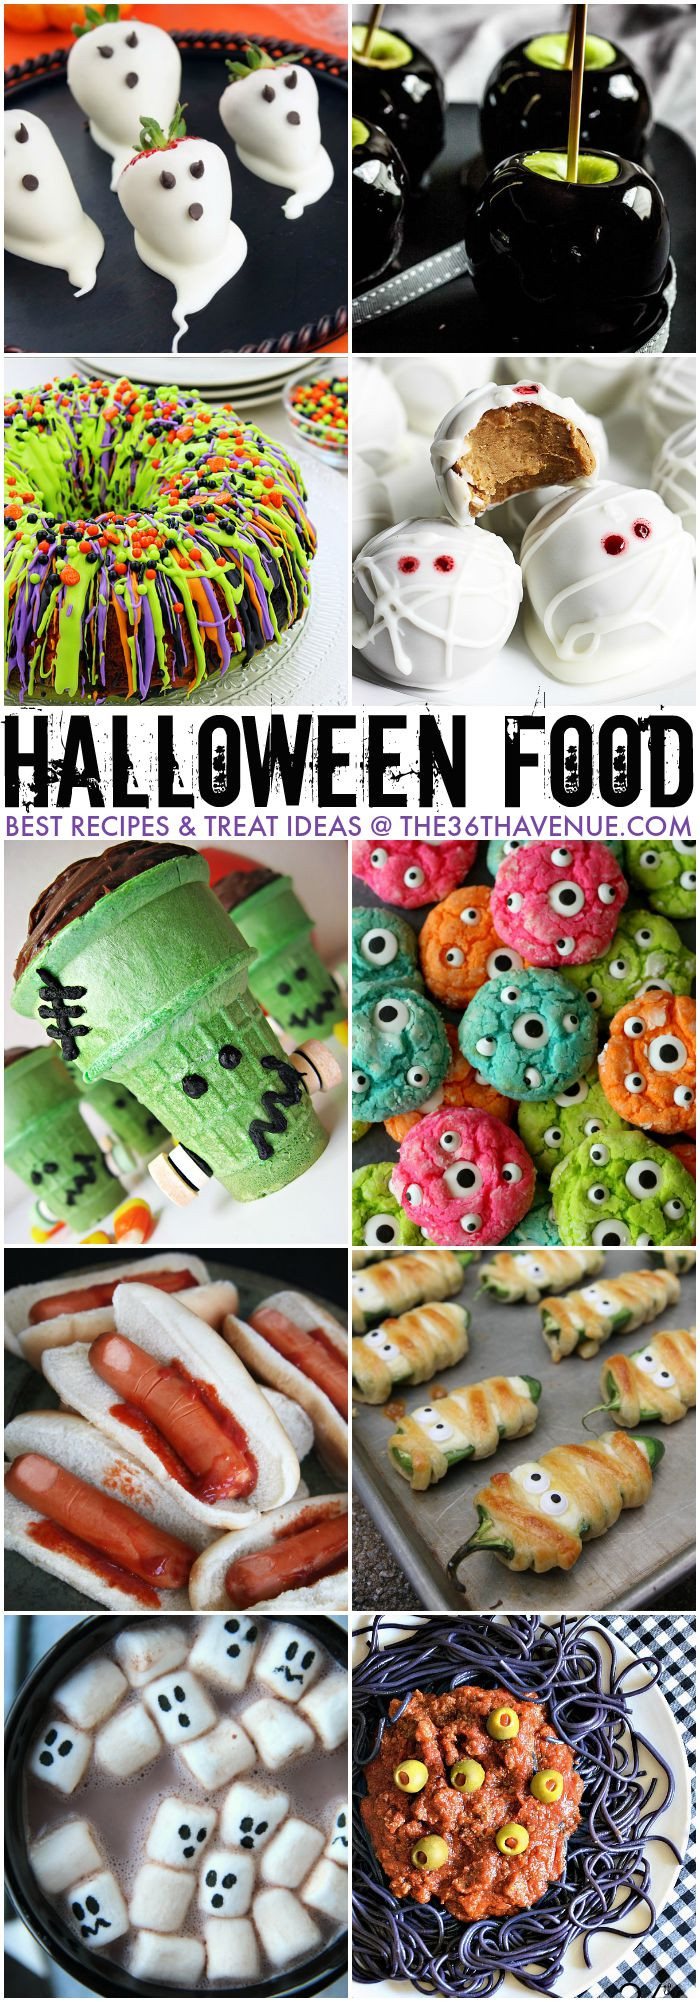 Best Halloween Desserts  Halloween Best Treats and Recipes The 36th AVENUE